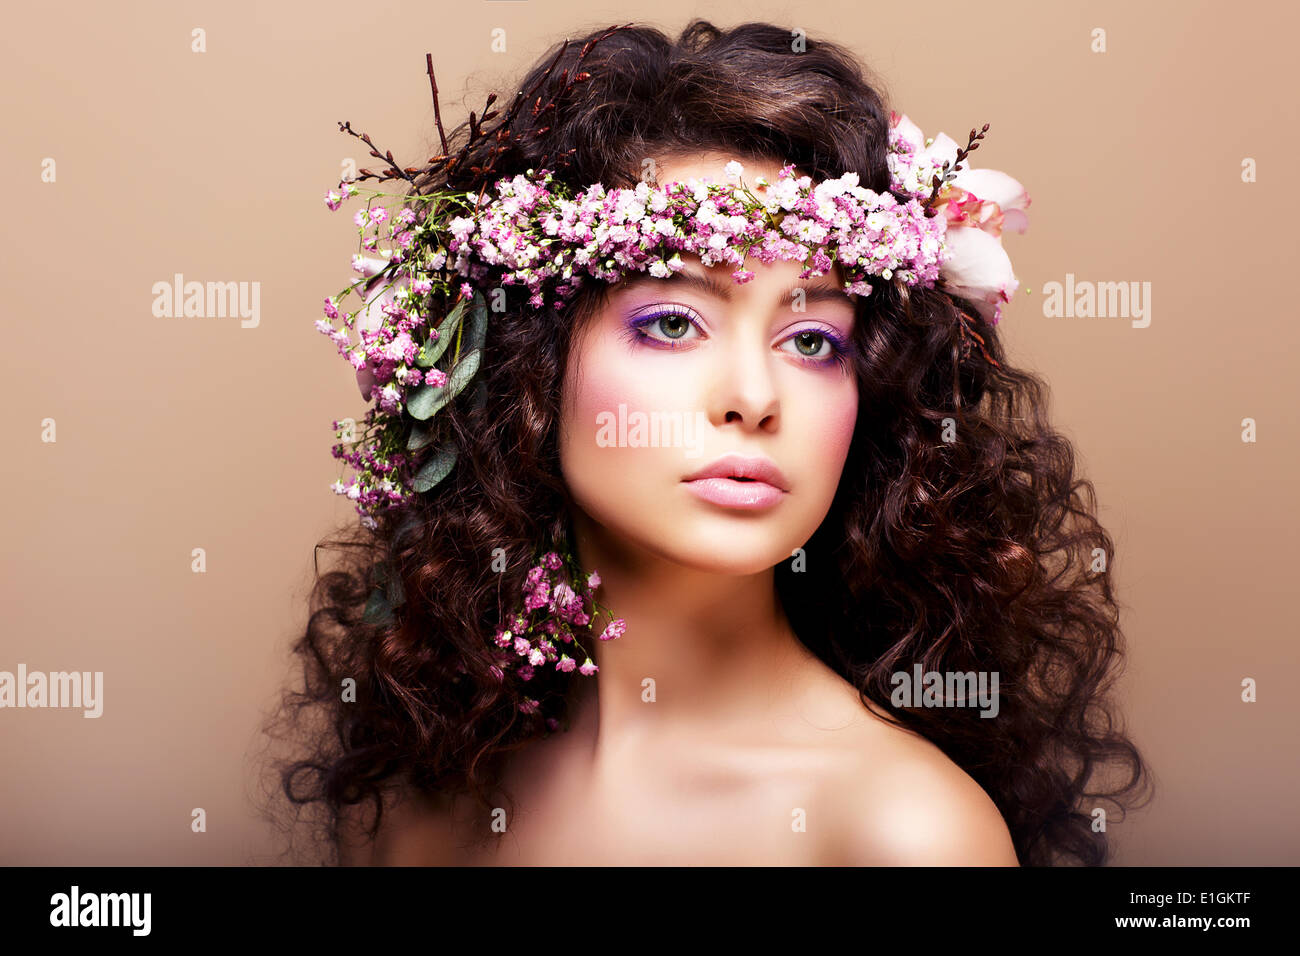 Luxuriant. Femininity. Fashion Model with Classic Wreath of Flowers - Stock Image